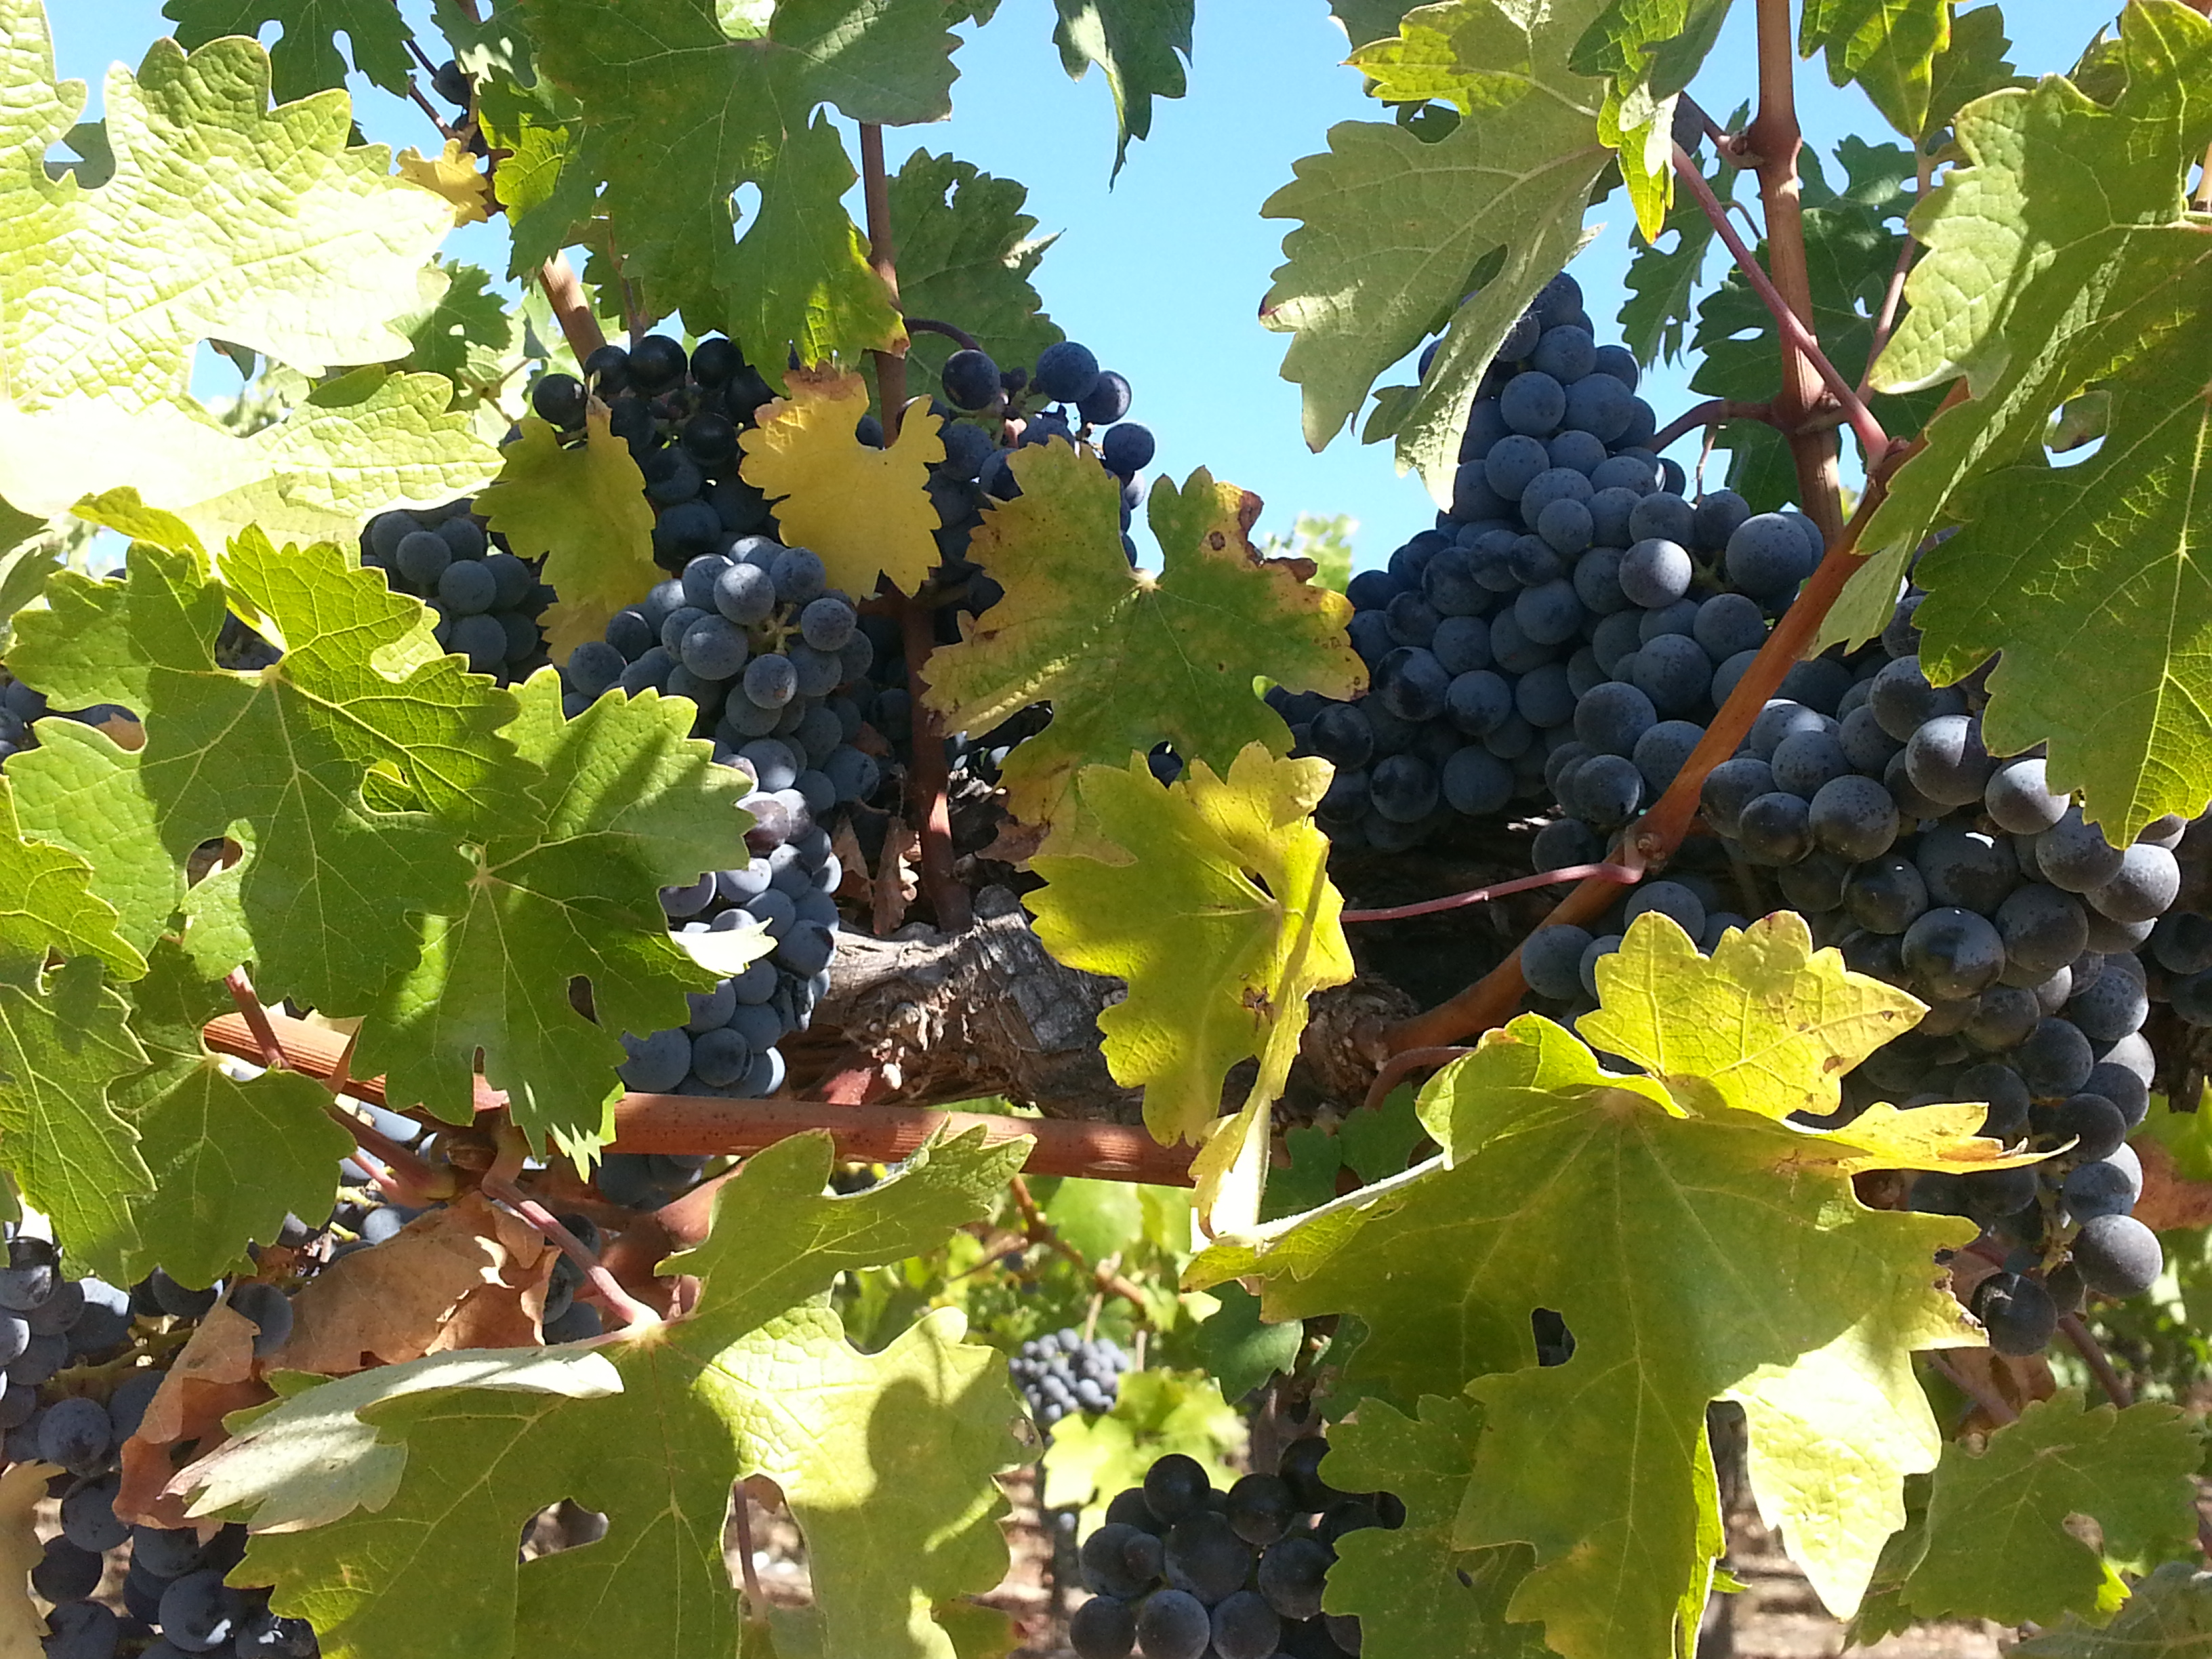 Bunches of grapes on the vine in Wine Country